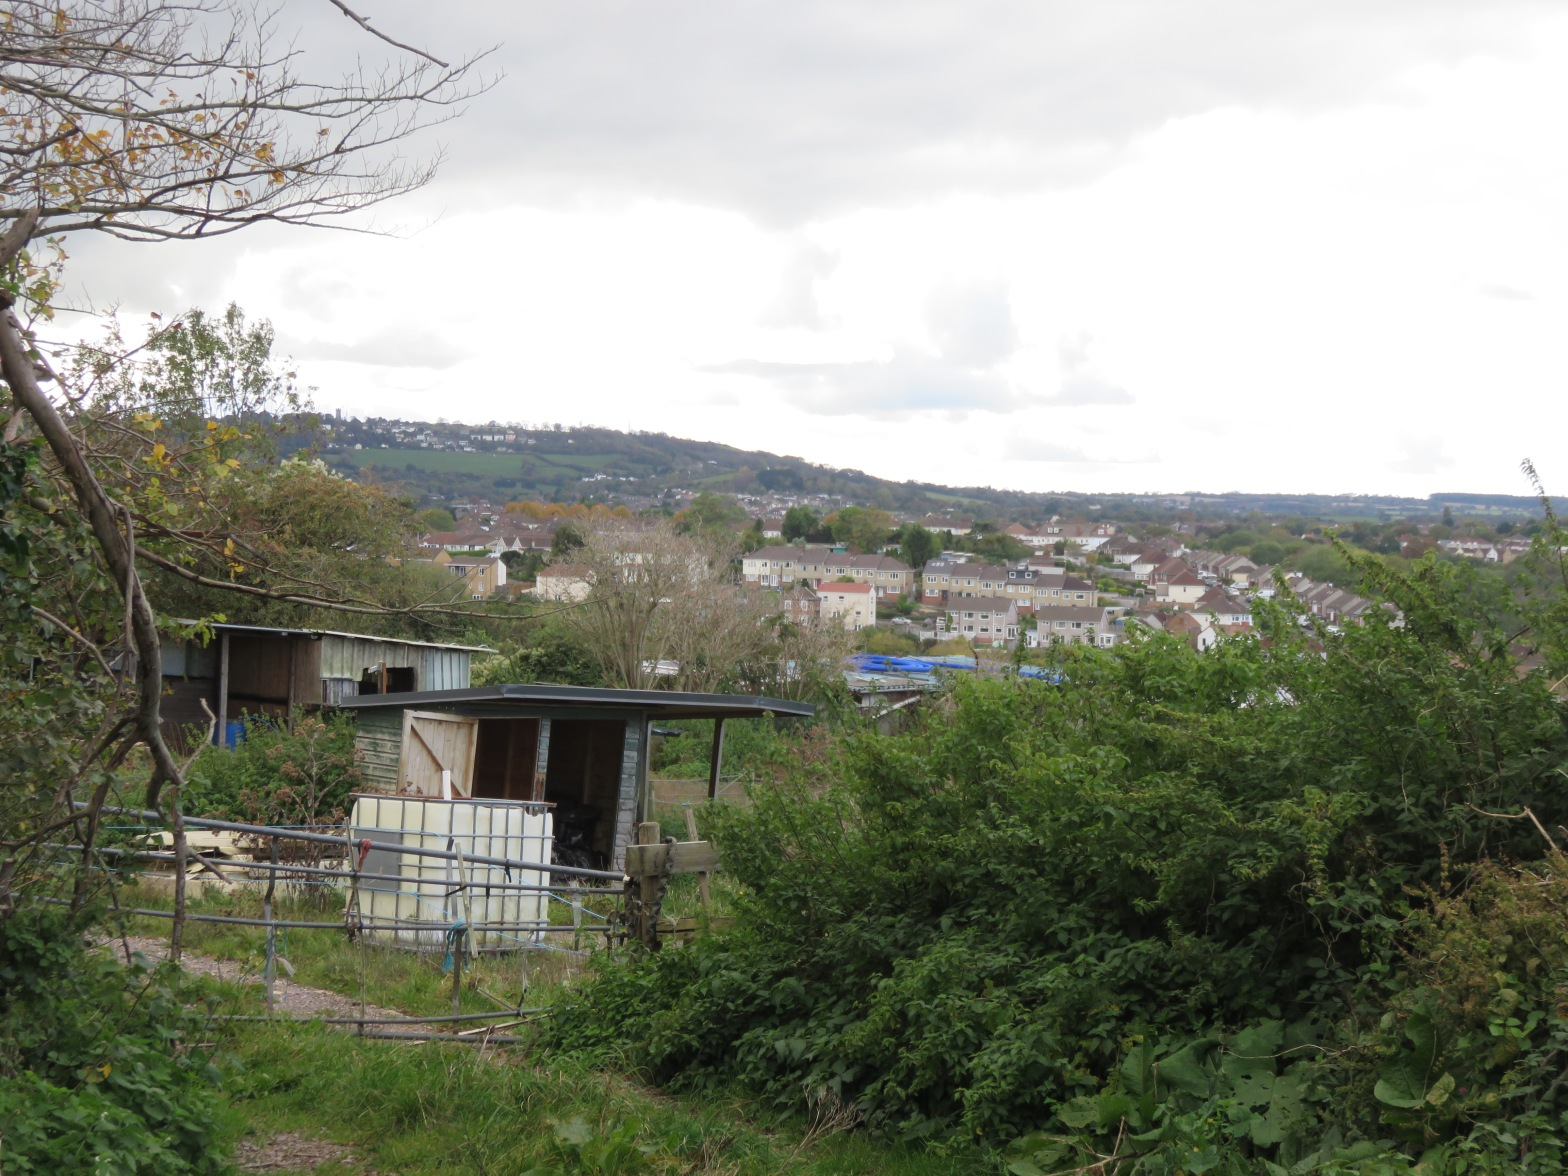 View towards Dundry from Nover's Hill